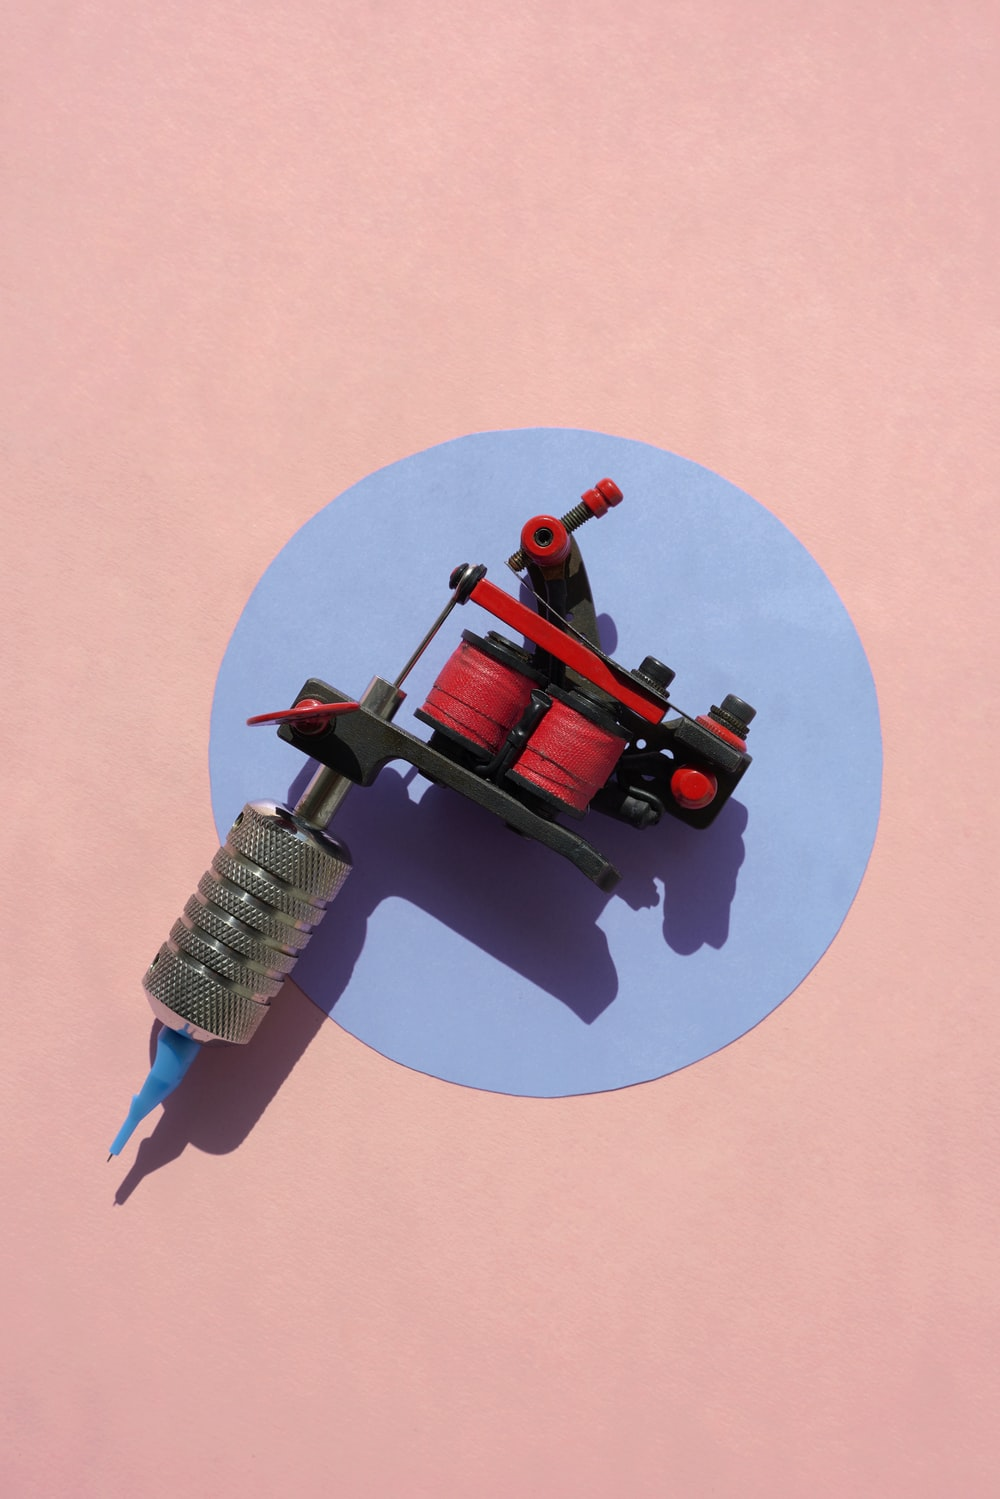 black and red tattoo machine on pink surface